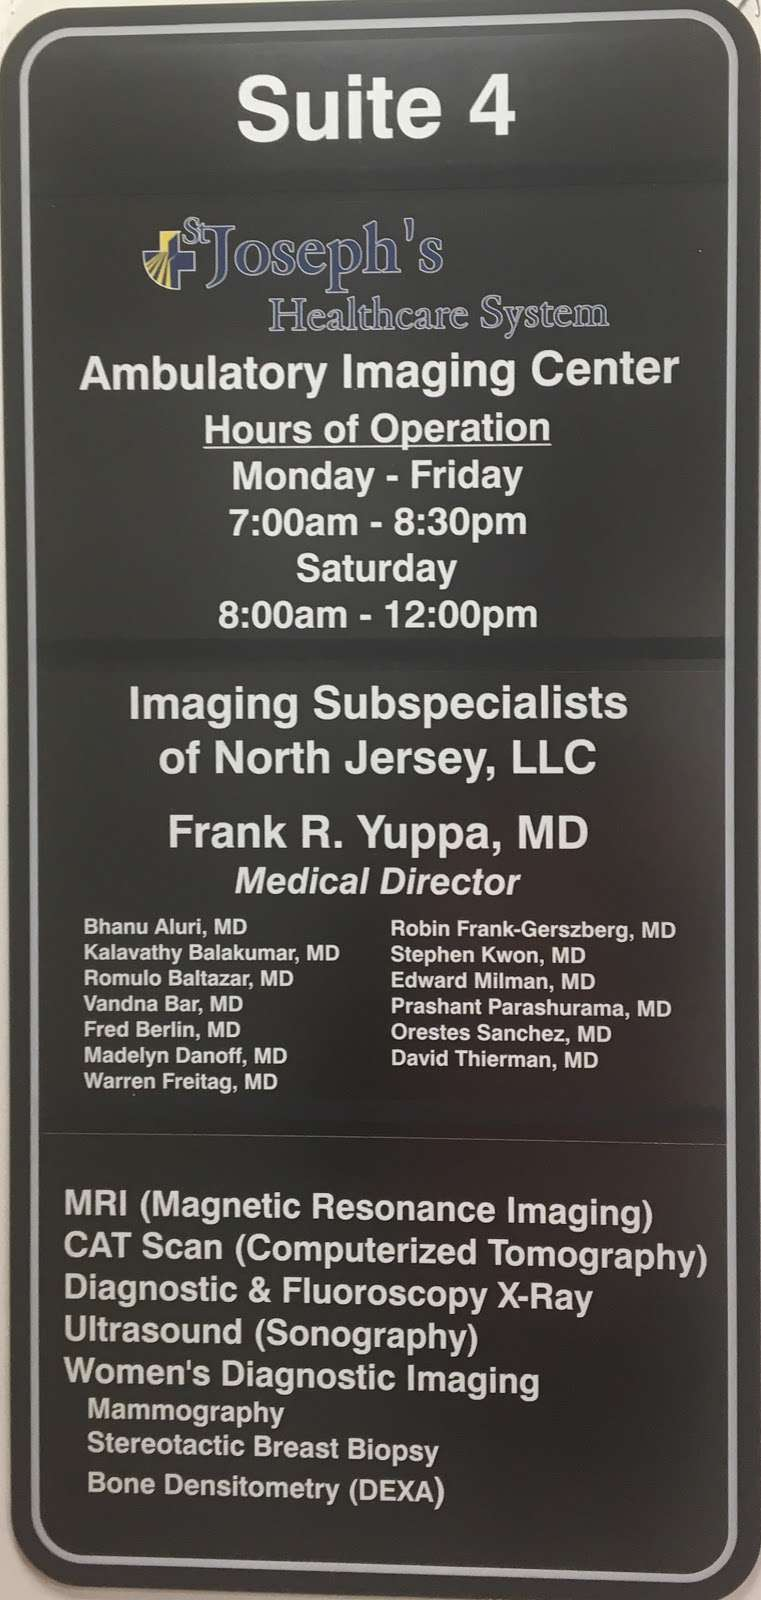 St. Josephs Ambulatory Imaging Center - health  | Photo 8 of 9 | Address: 1135 Broad St #4, Clifton, NJ 07013, USA | Phone: (973) 569-6300